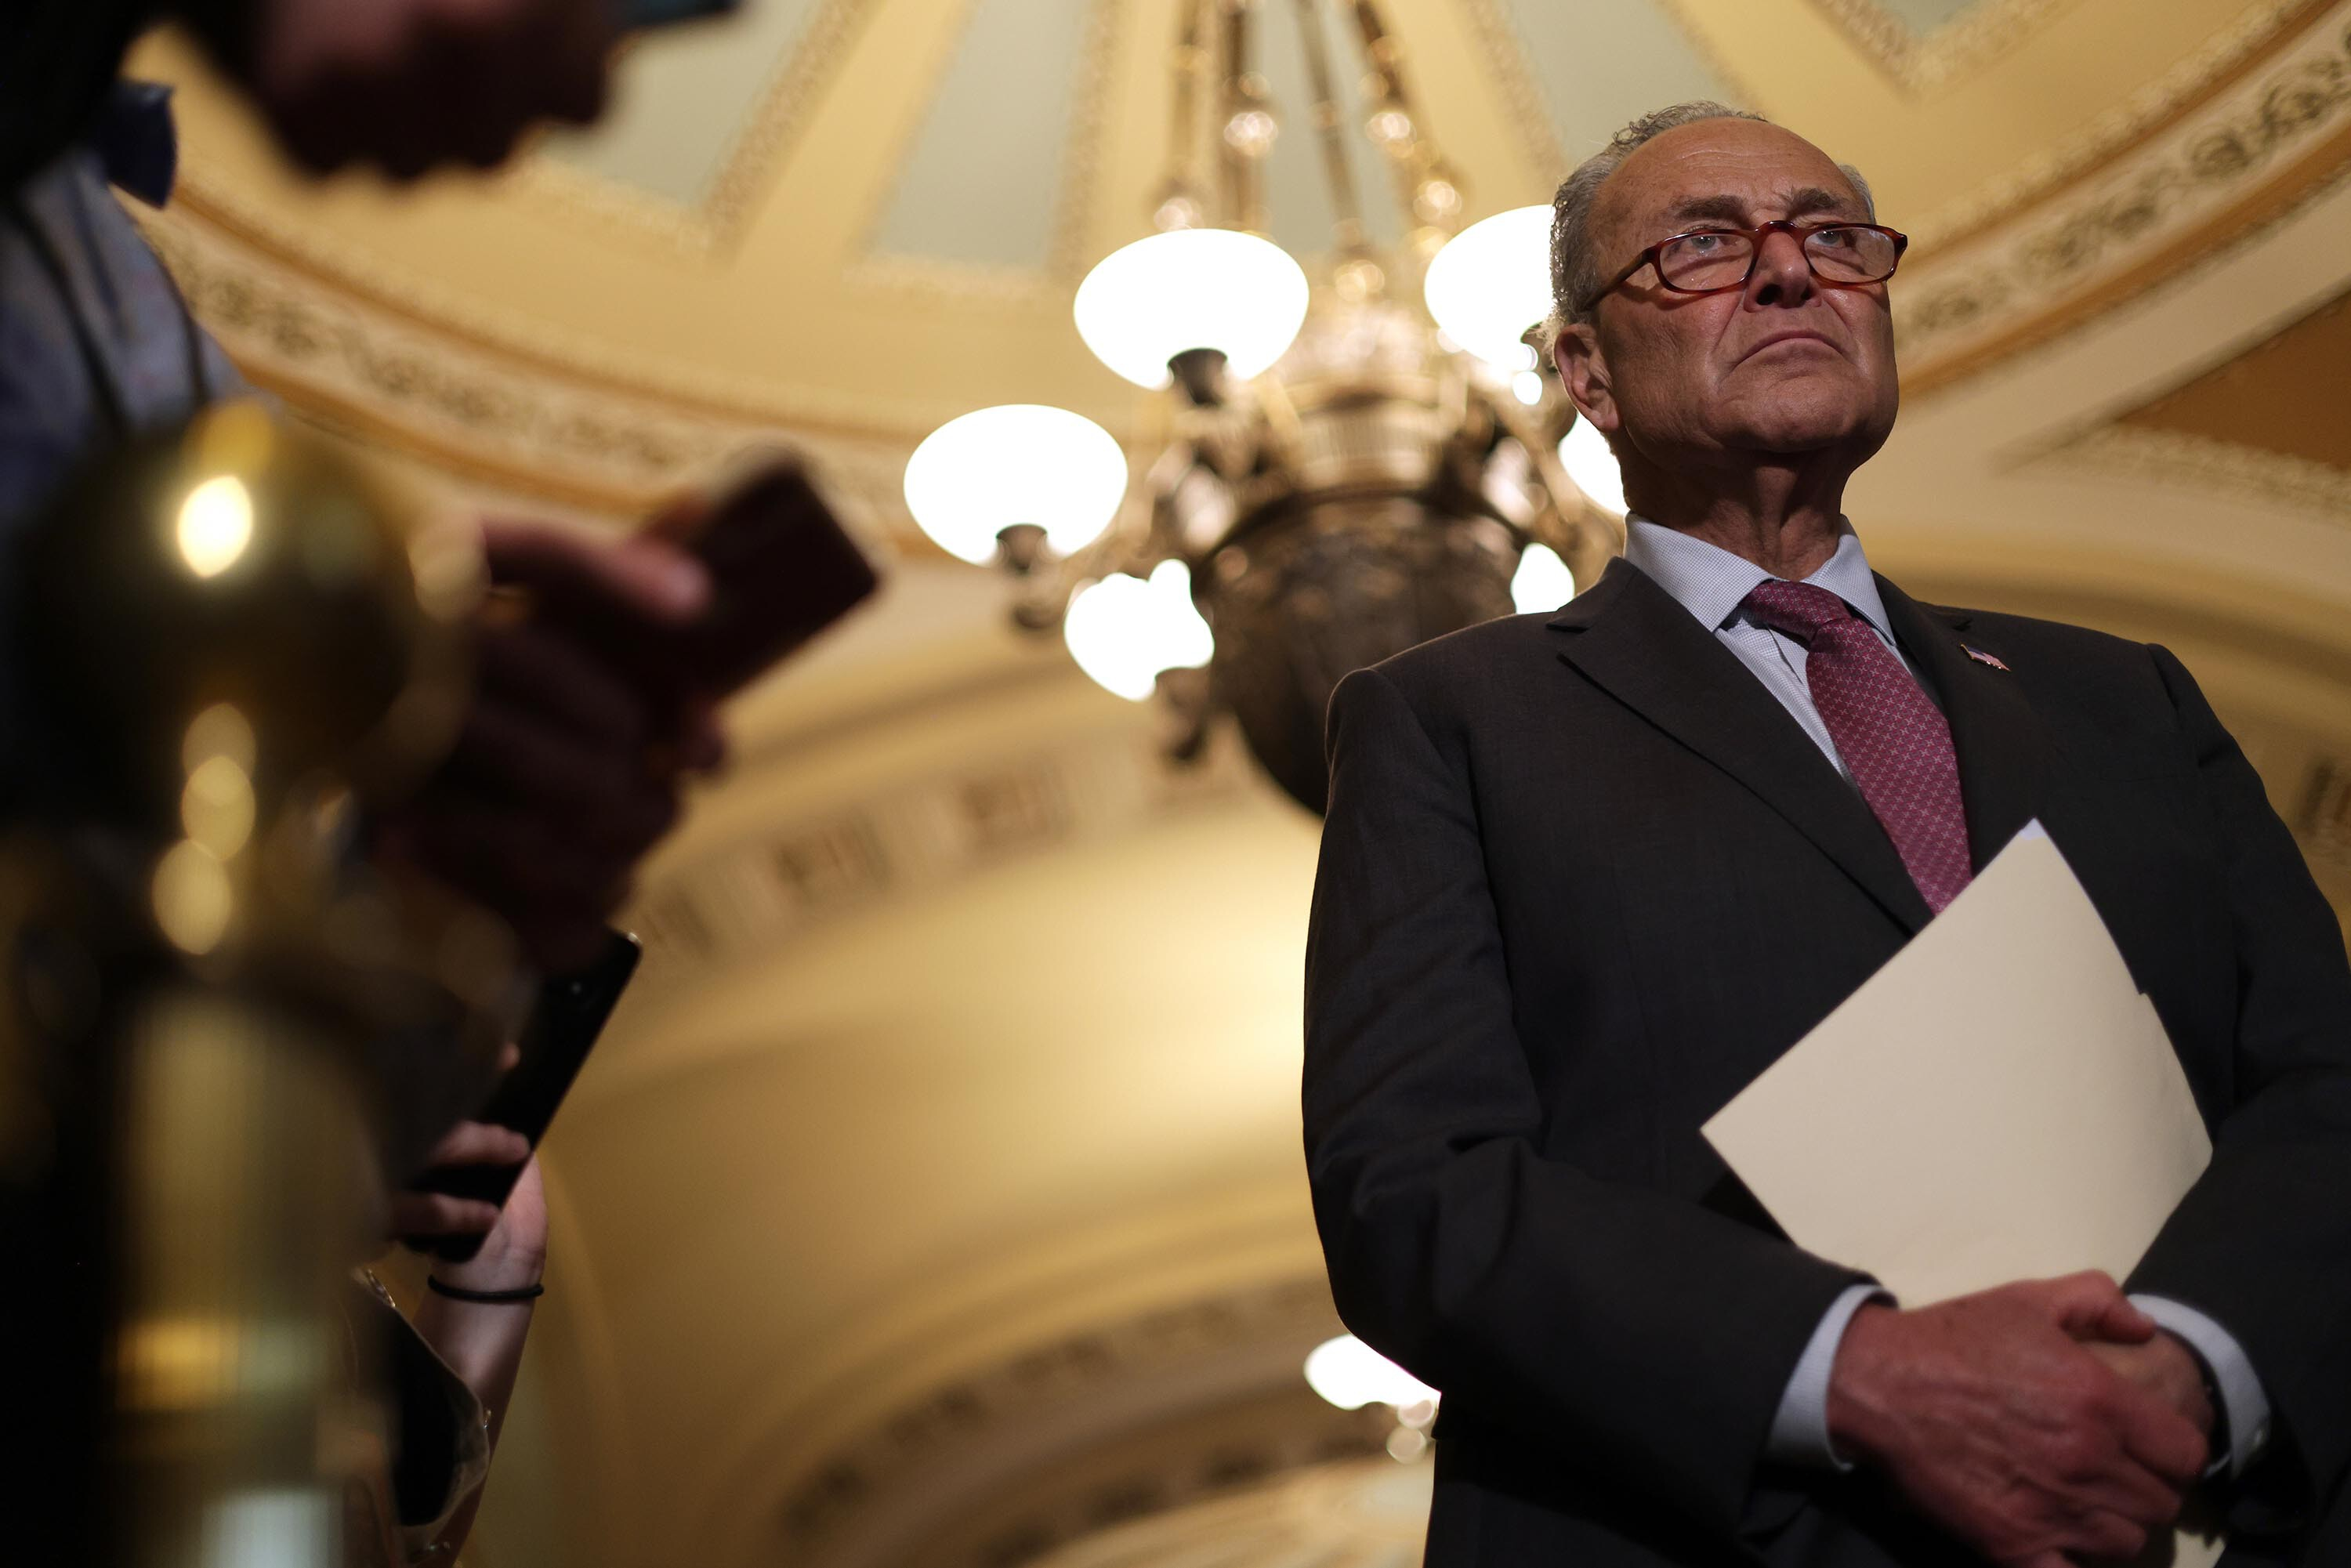 Schumer announces bipartisan group has finalized legislative text on infrastructure bill